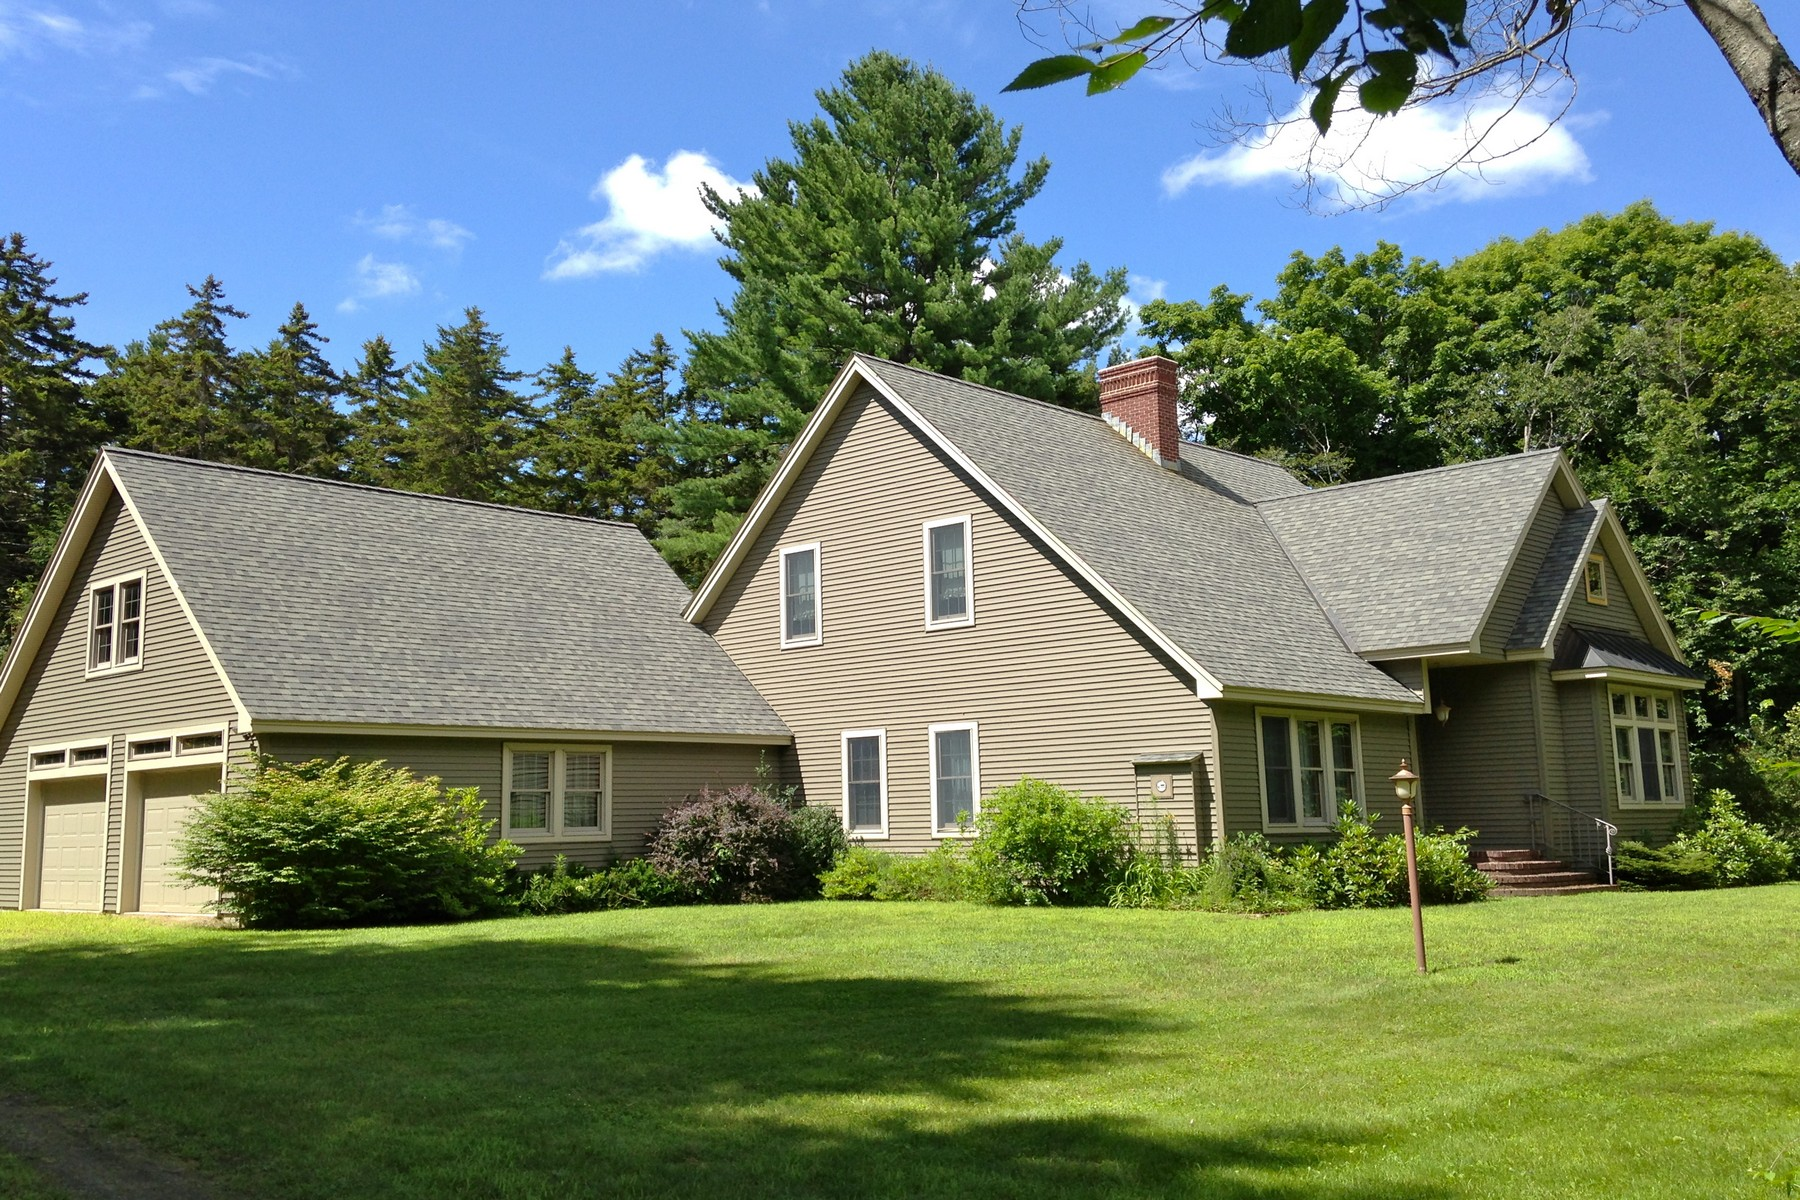 Single Family Home for Rent at 2 Miles from Okemo 186 Ellison Loop Ludlow, Vermont, 05149 United States